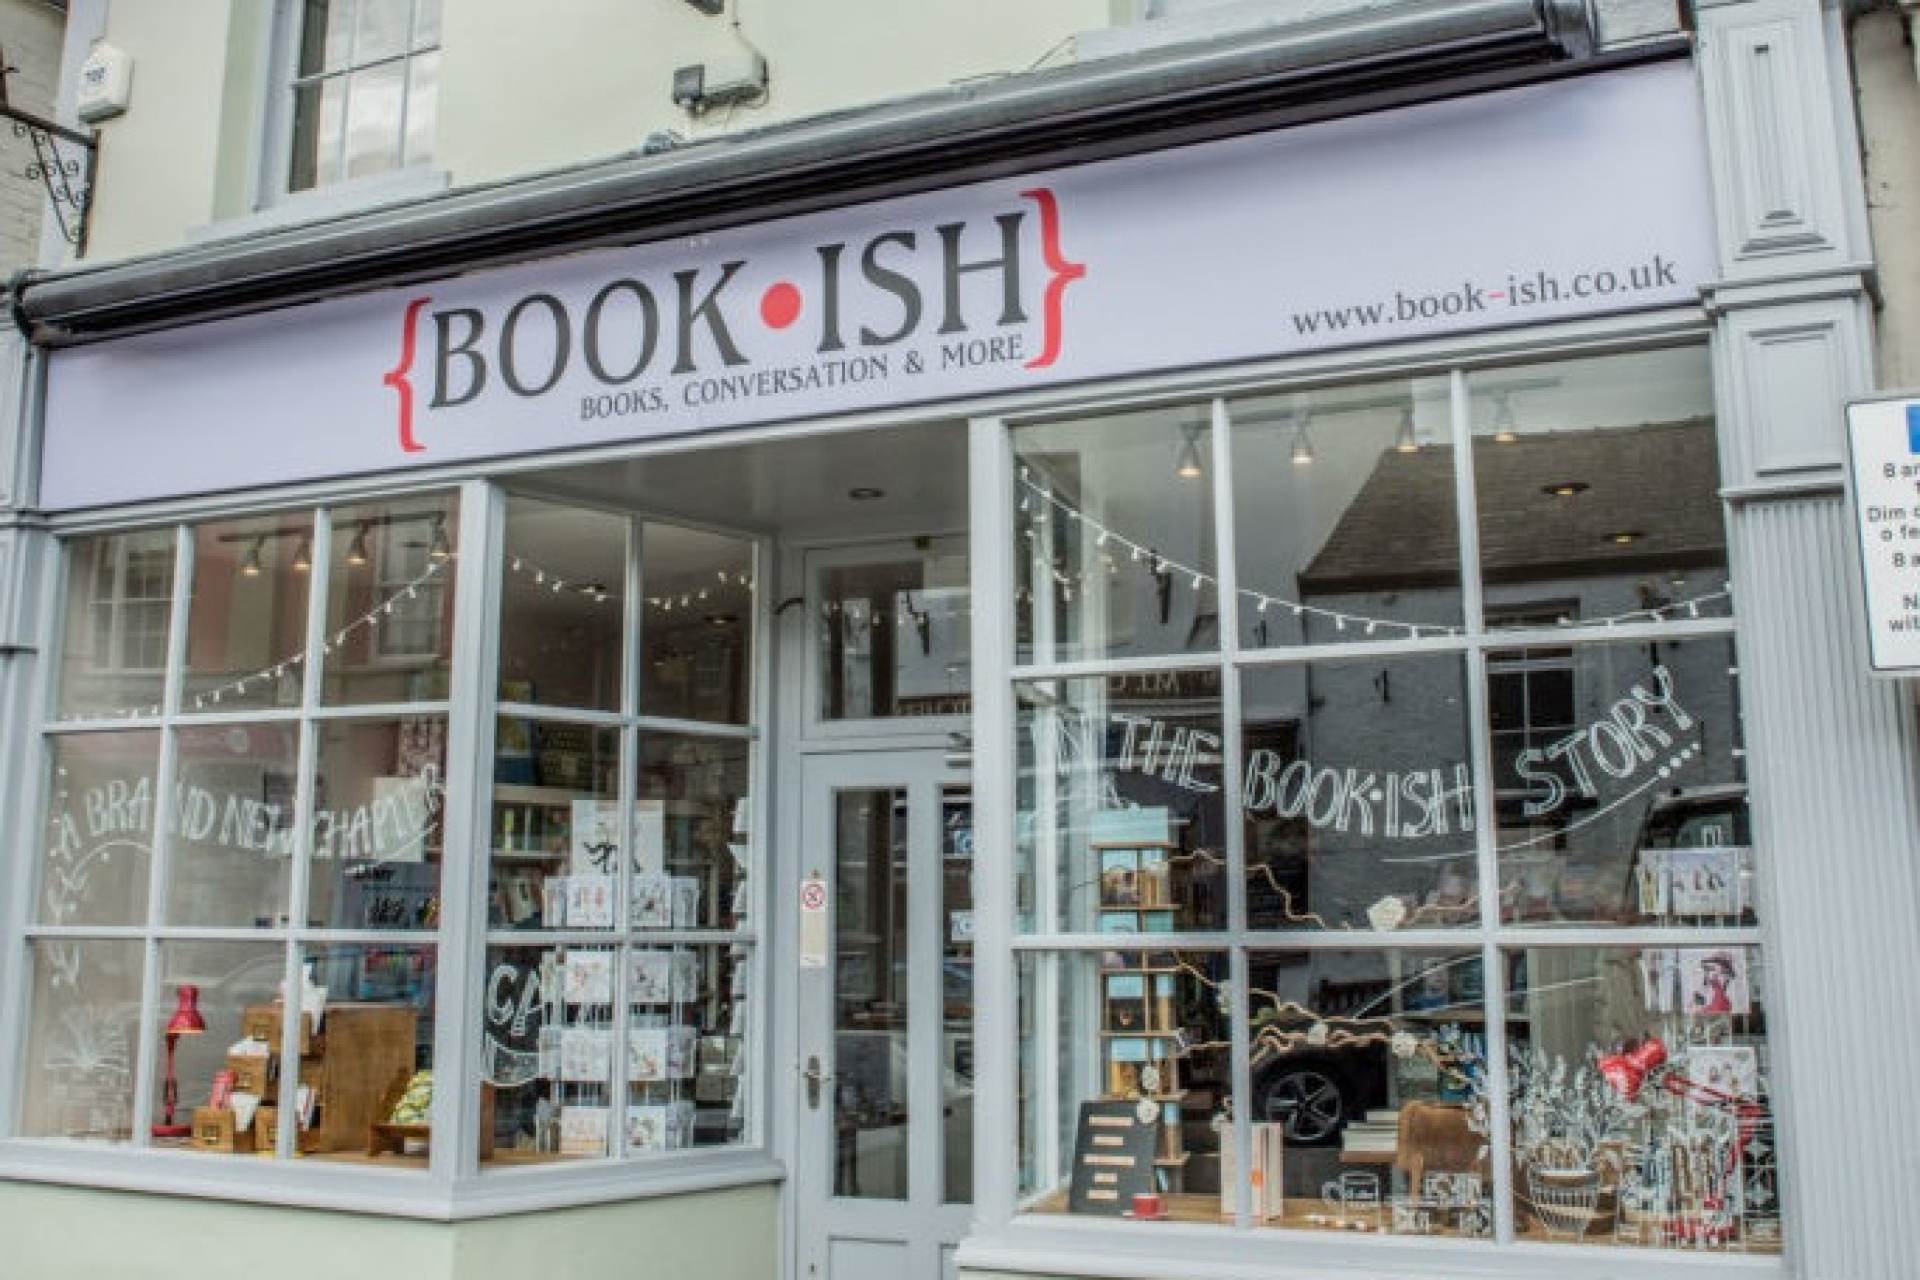 Bookshop of the Month: Book-ish, Crickhowell